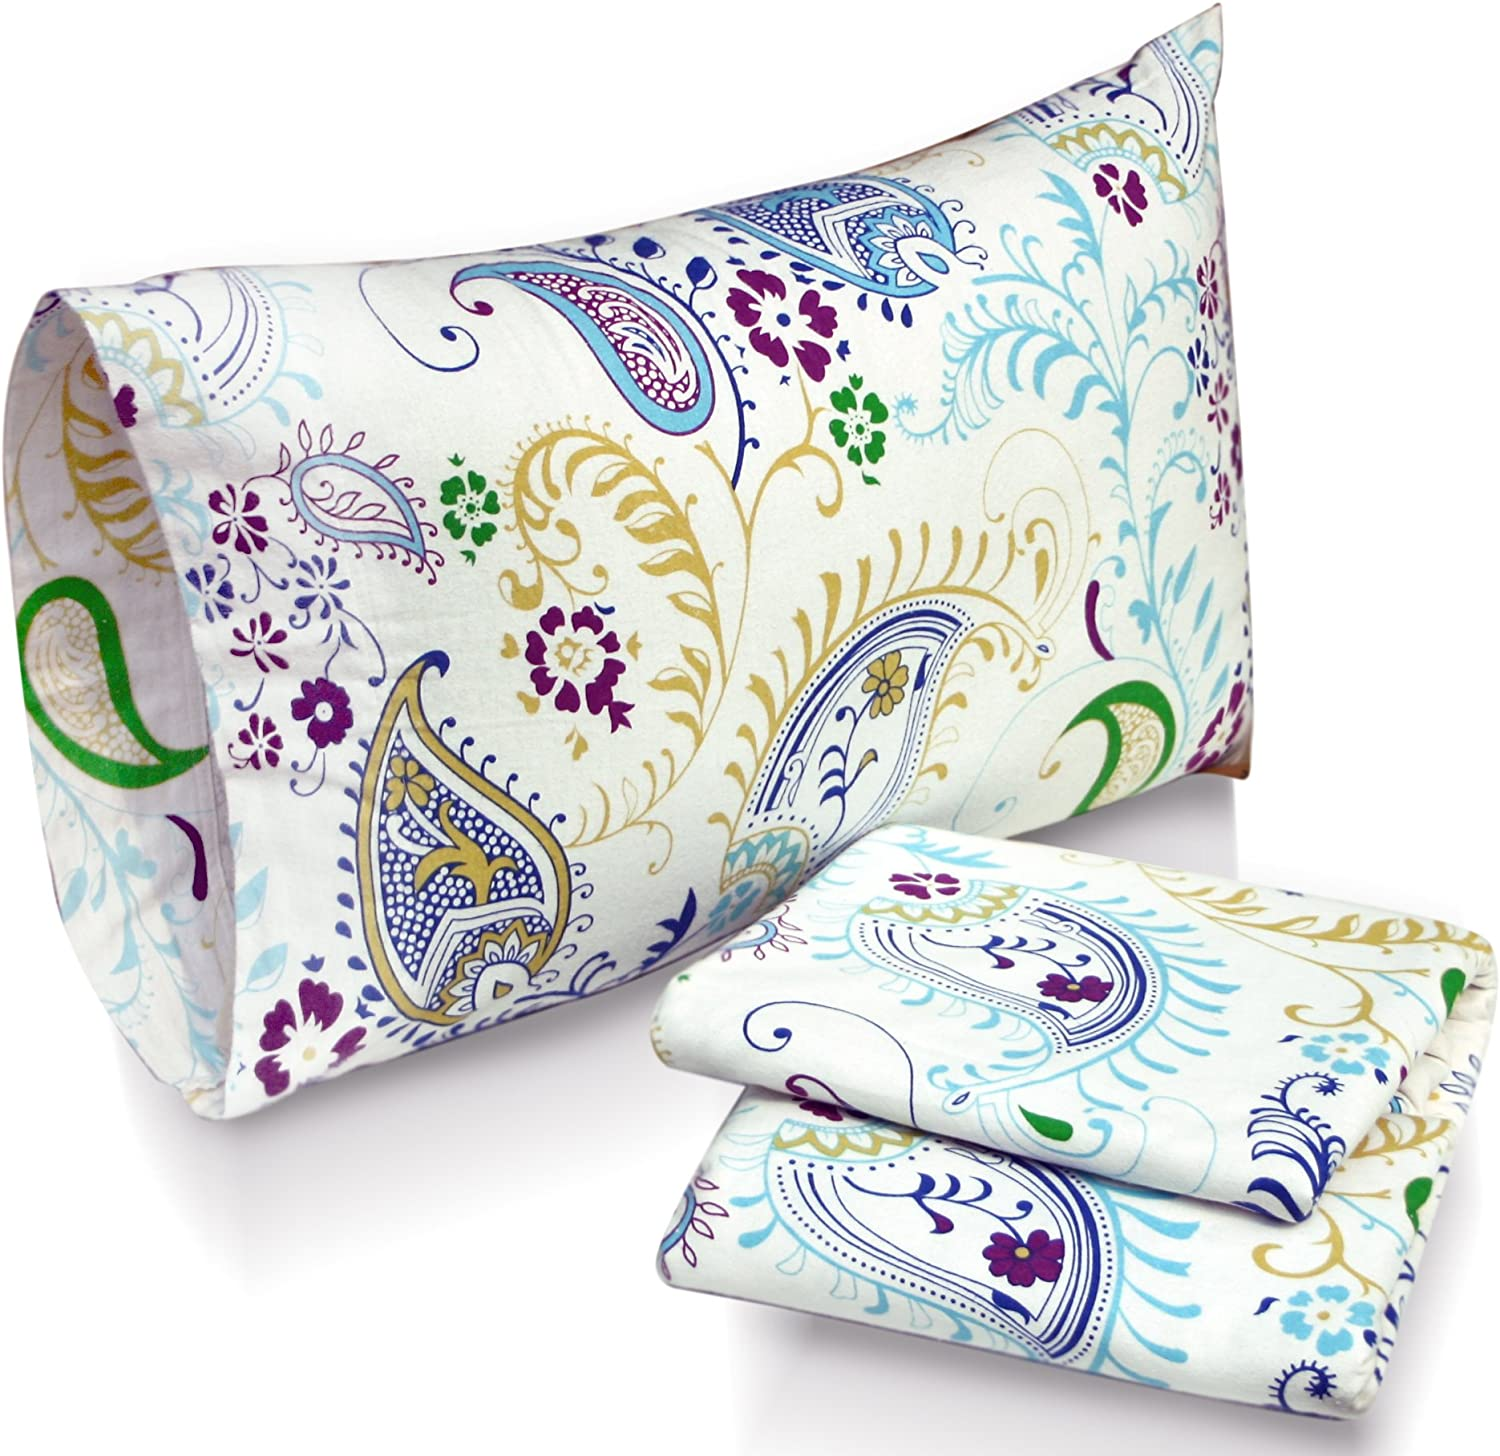 Tribeca Living Paisley Garden Printed Deep Pocket Flannel Sheet Set with Pillowcase, Full